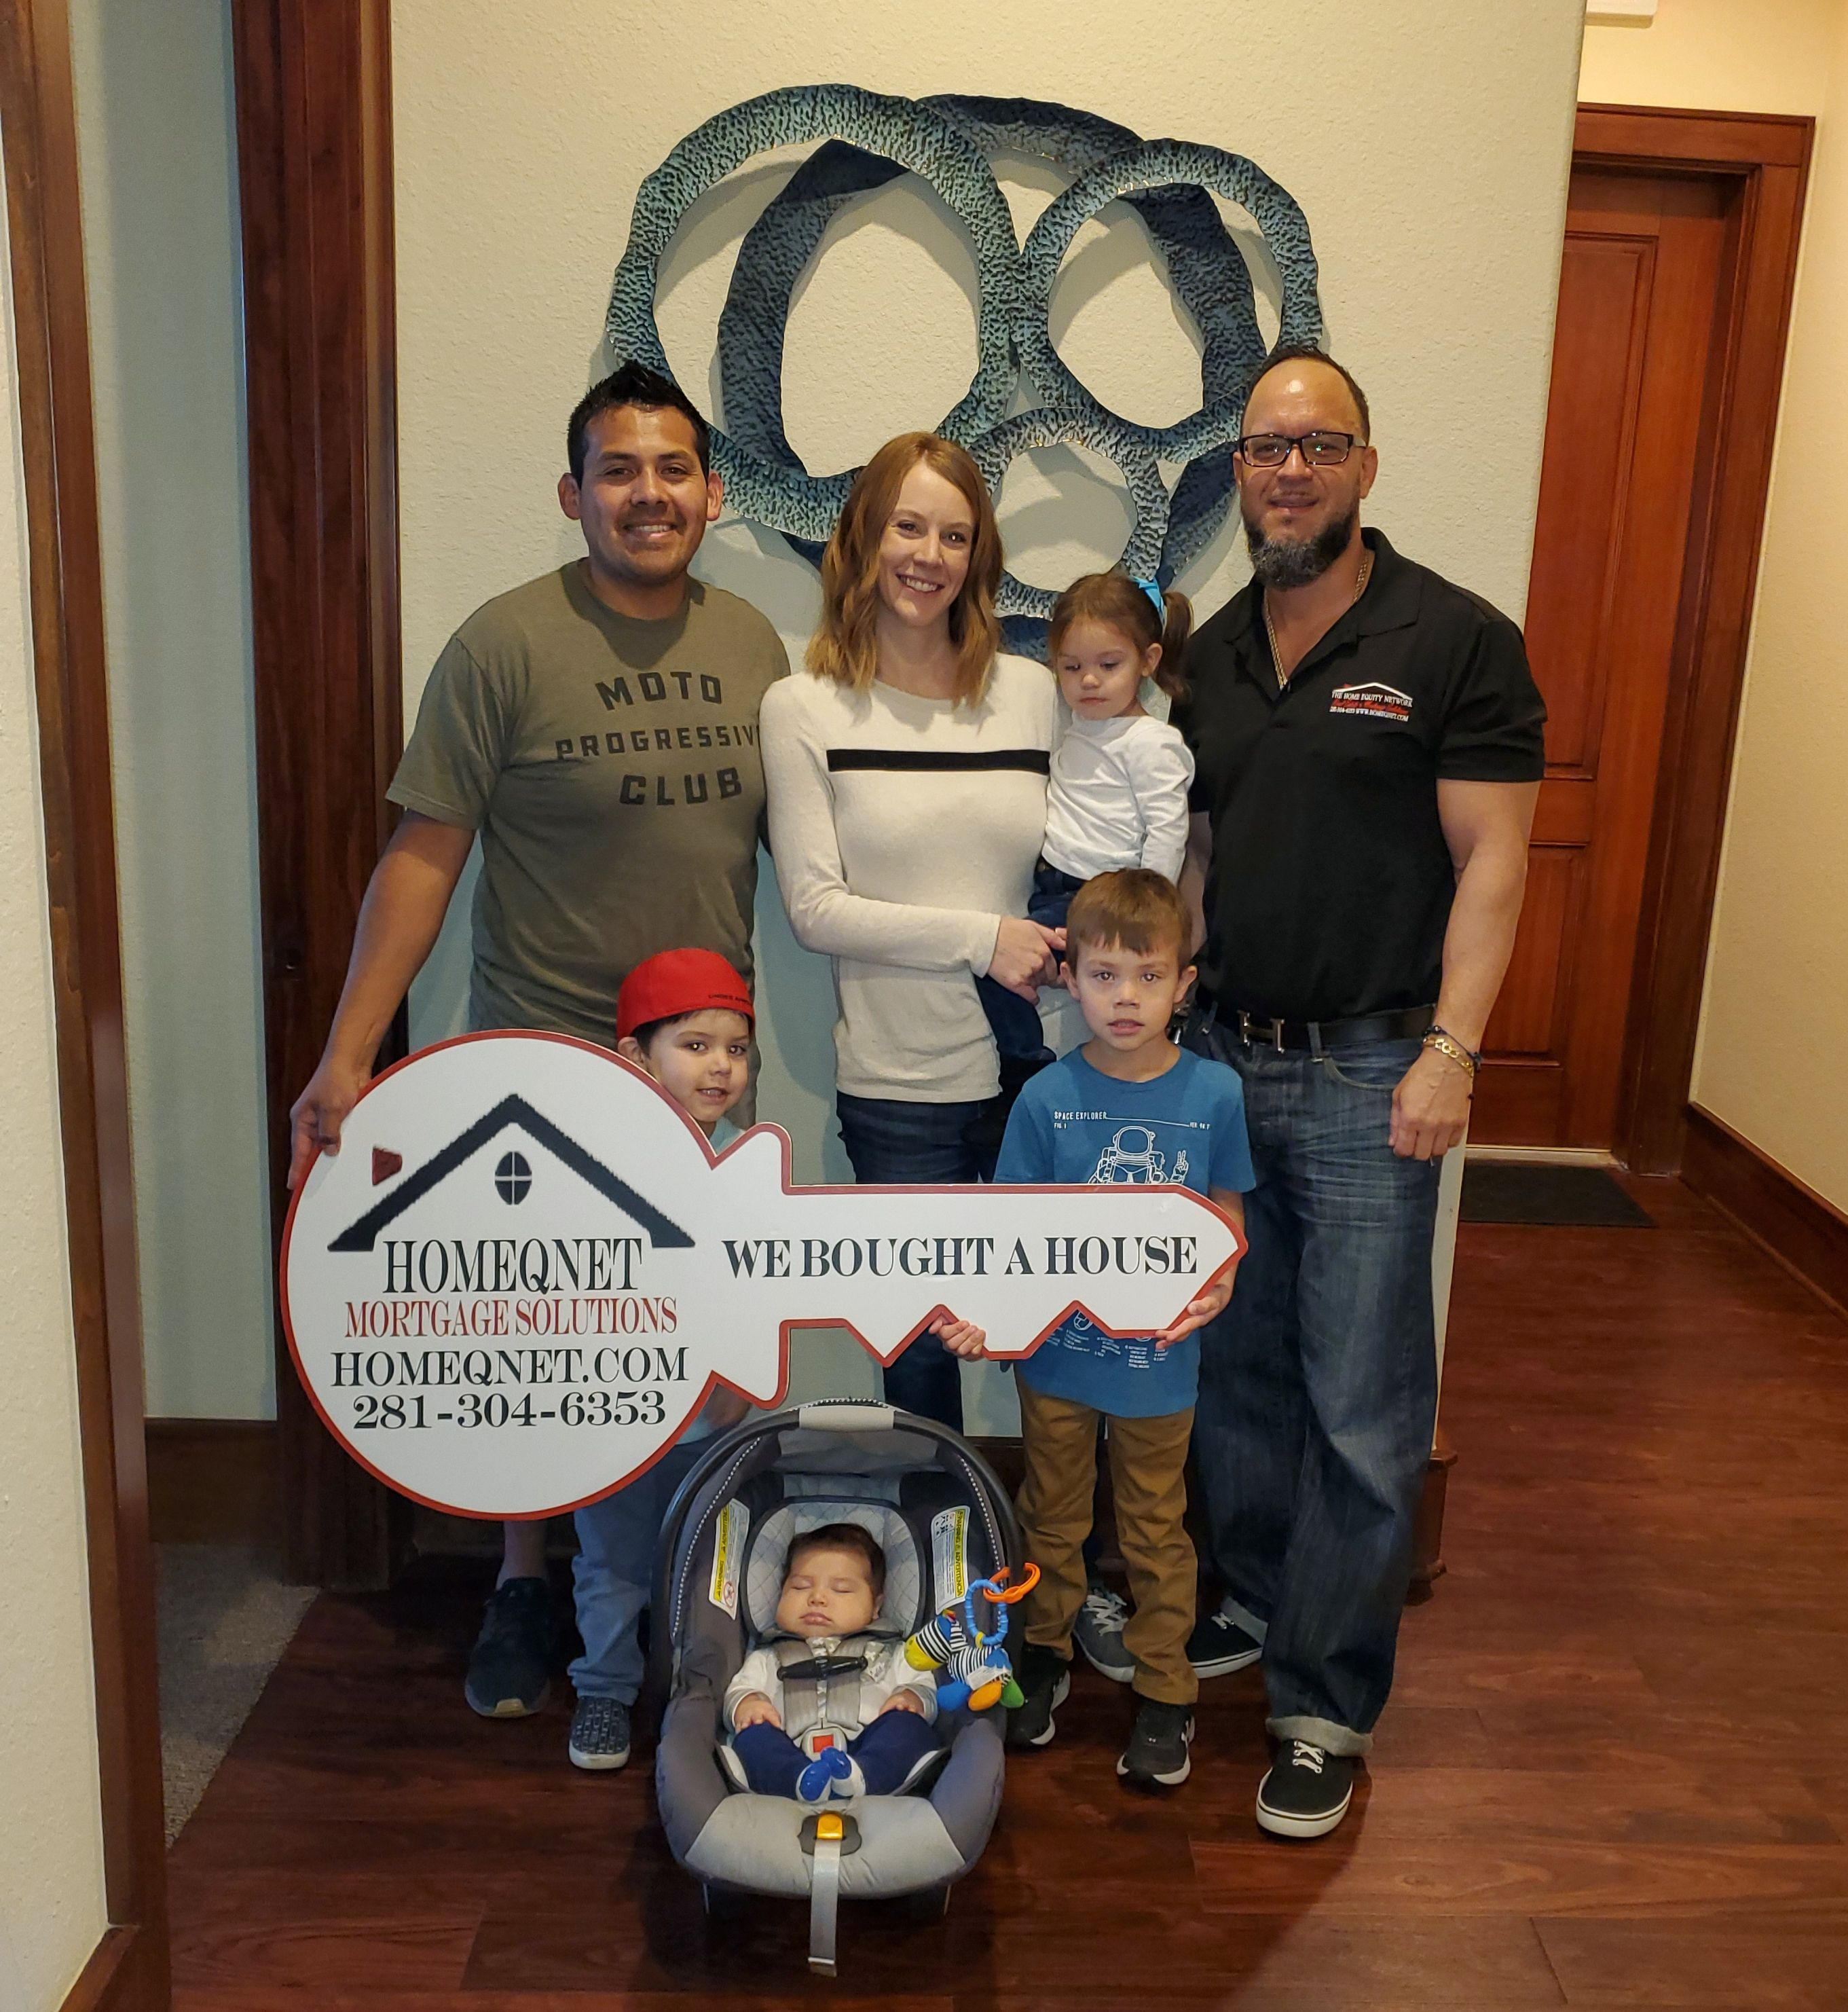 Congratulations to the garcia family on their home